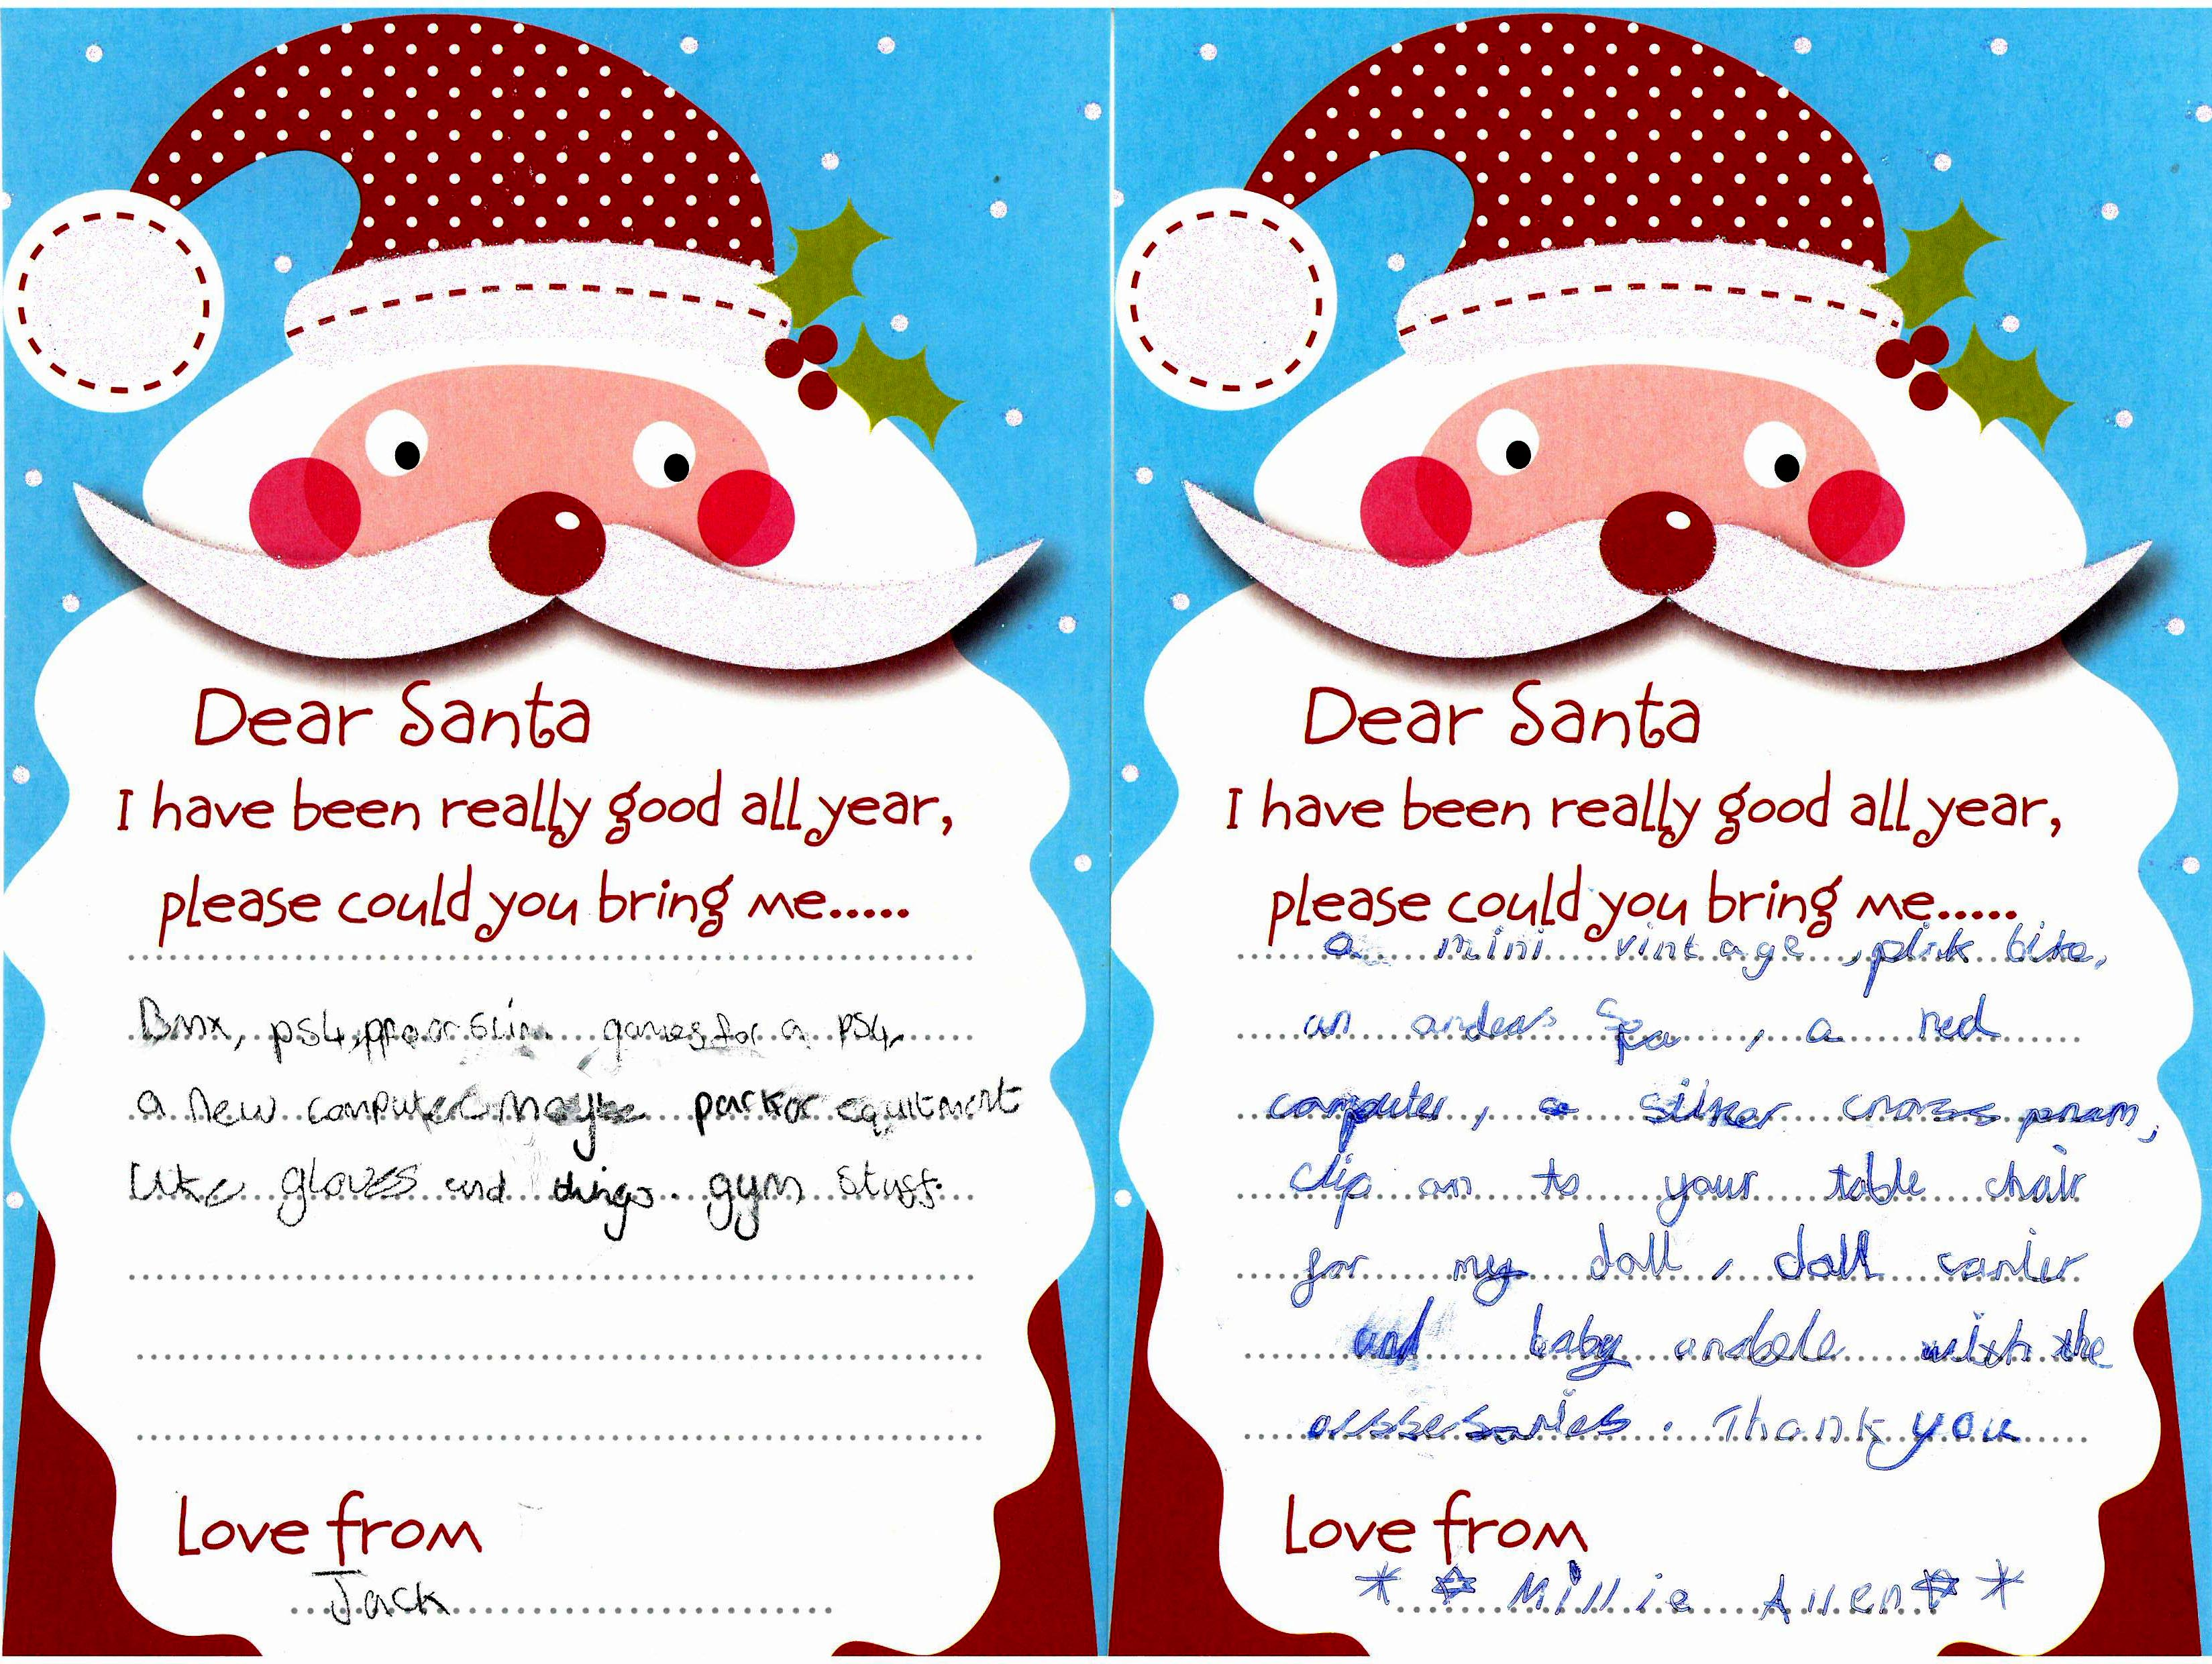 Children Forget Address on Letters to Santa